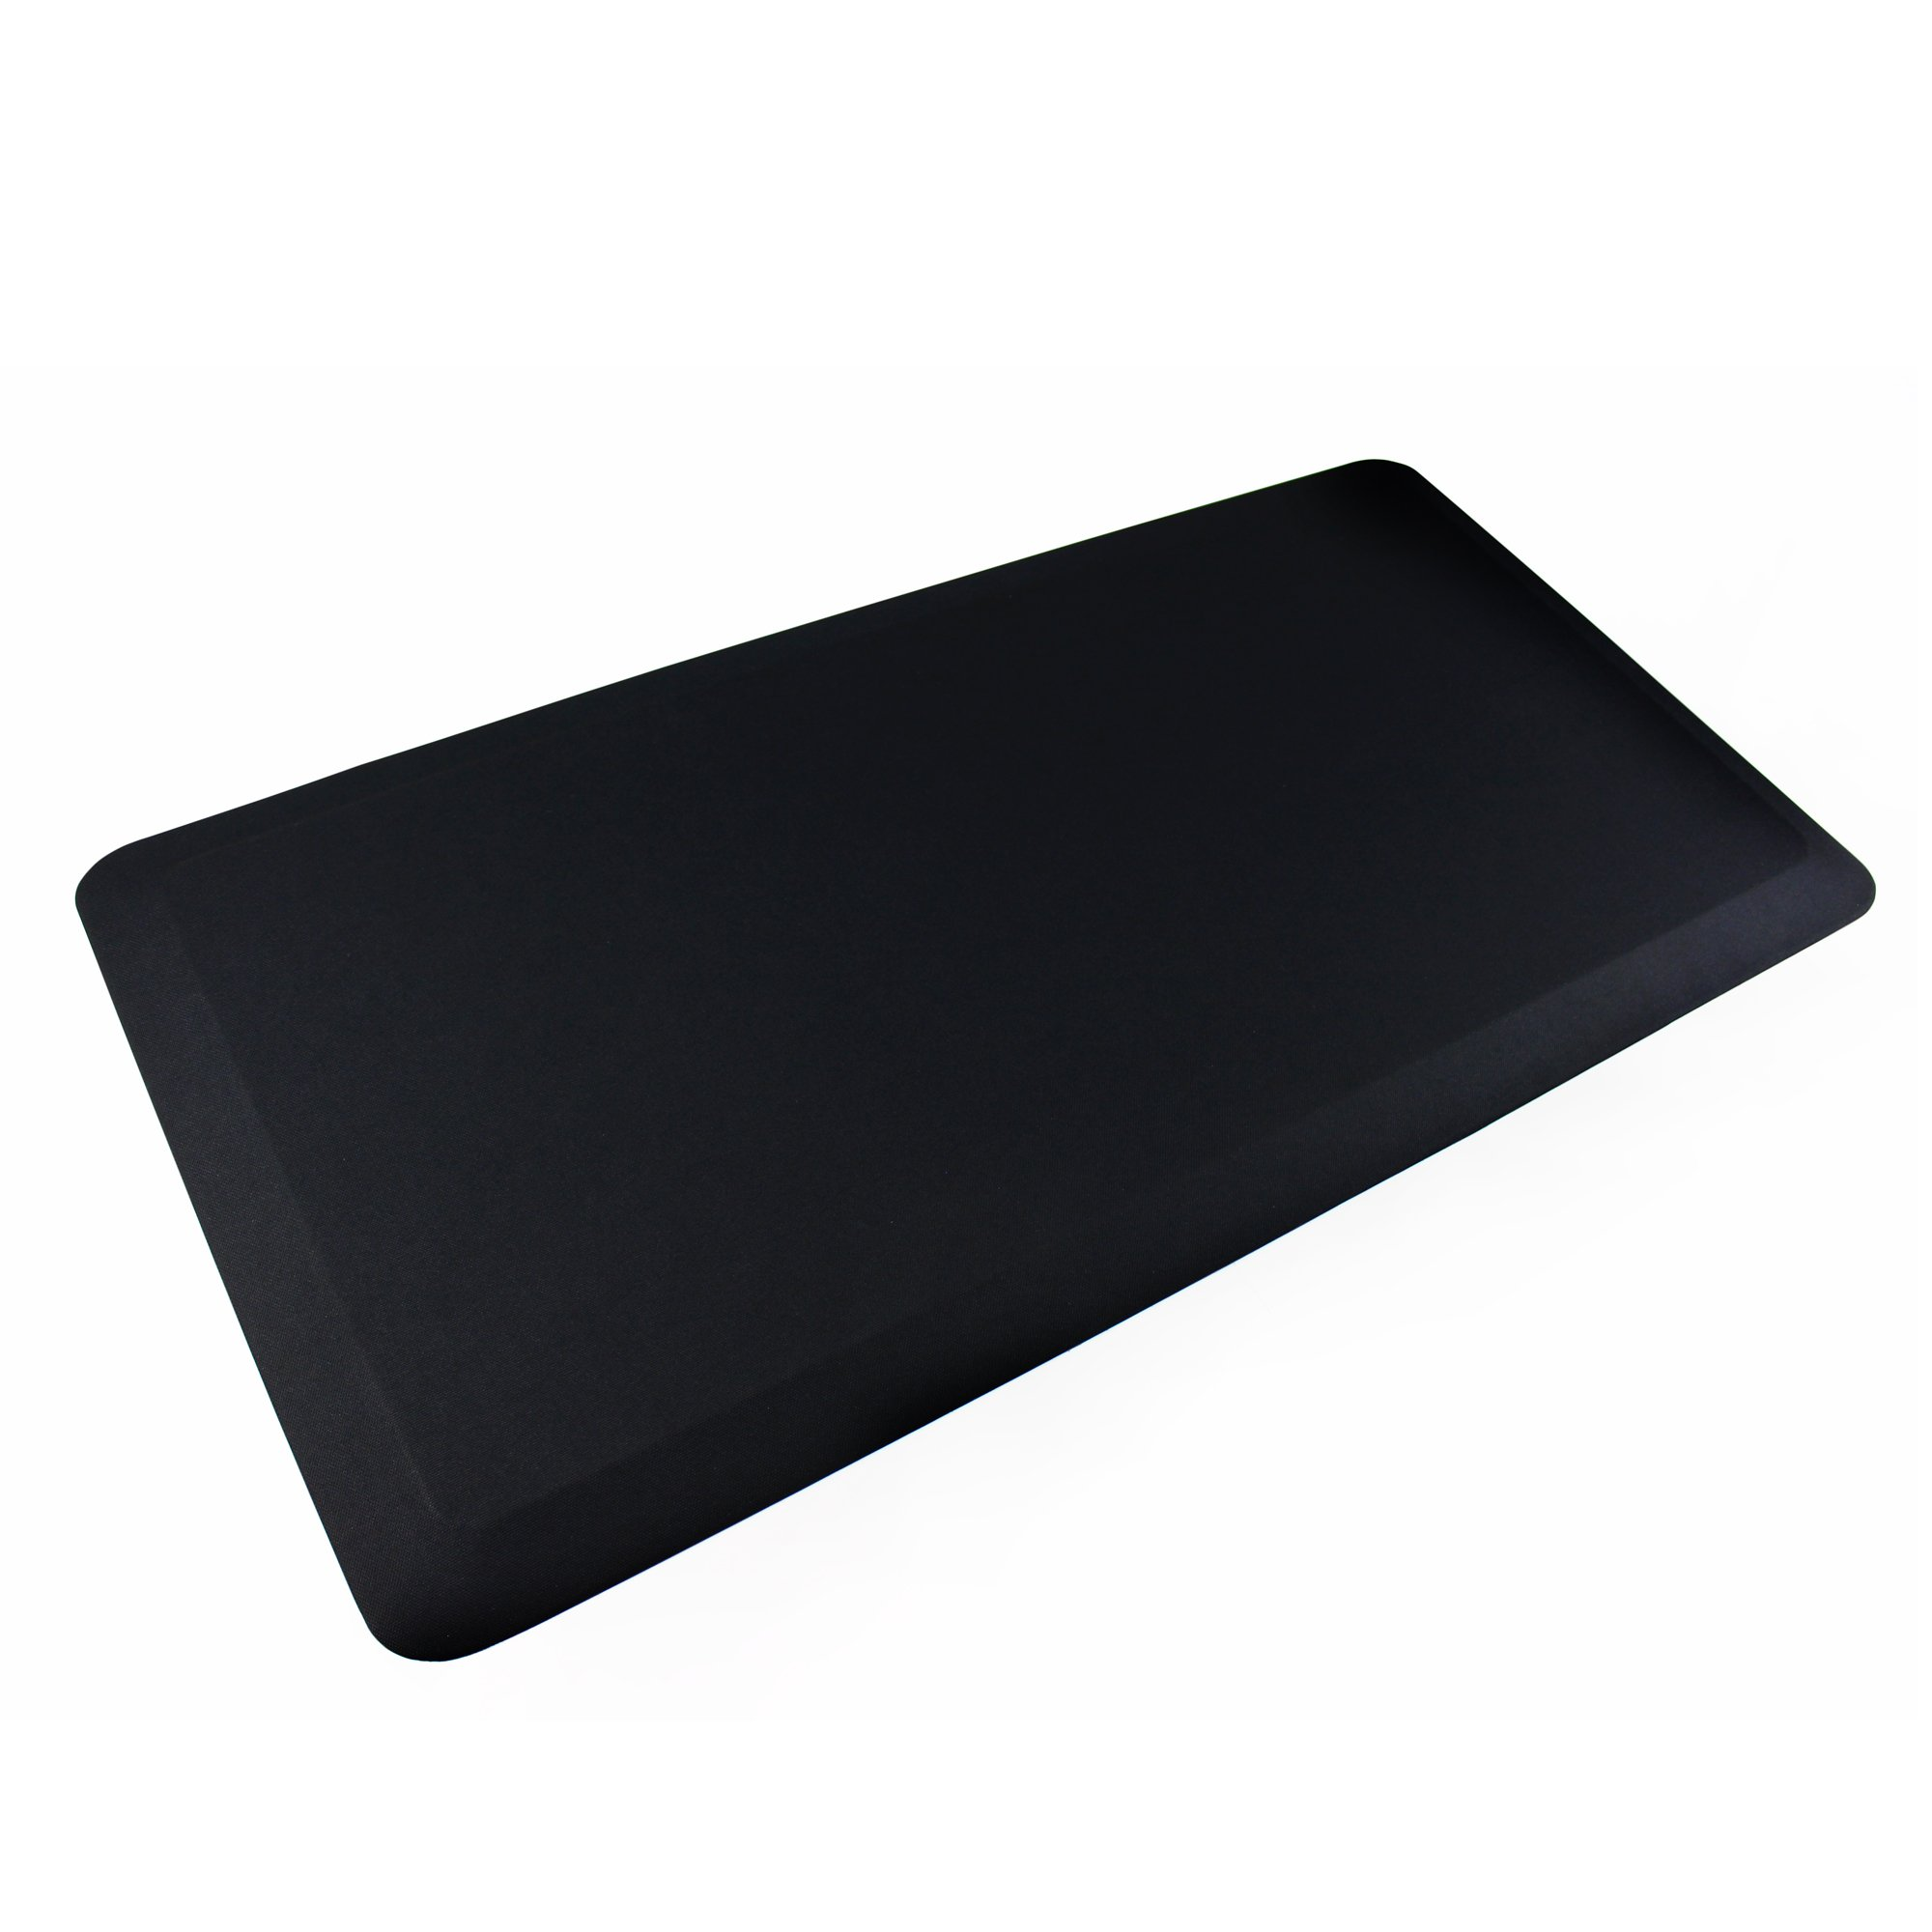 AFS-TEX System 3000 | Anti Fatigue Comfort Mat for Kitchen, Home, Office, Standing Desk | Large Anti Fatigue Mat with Soft Cover | Black | 20'' x 39'' by Floortex